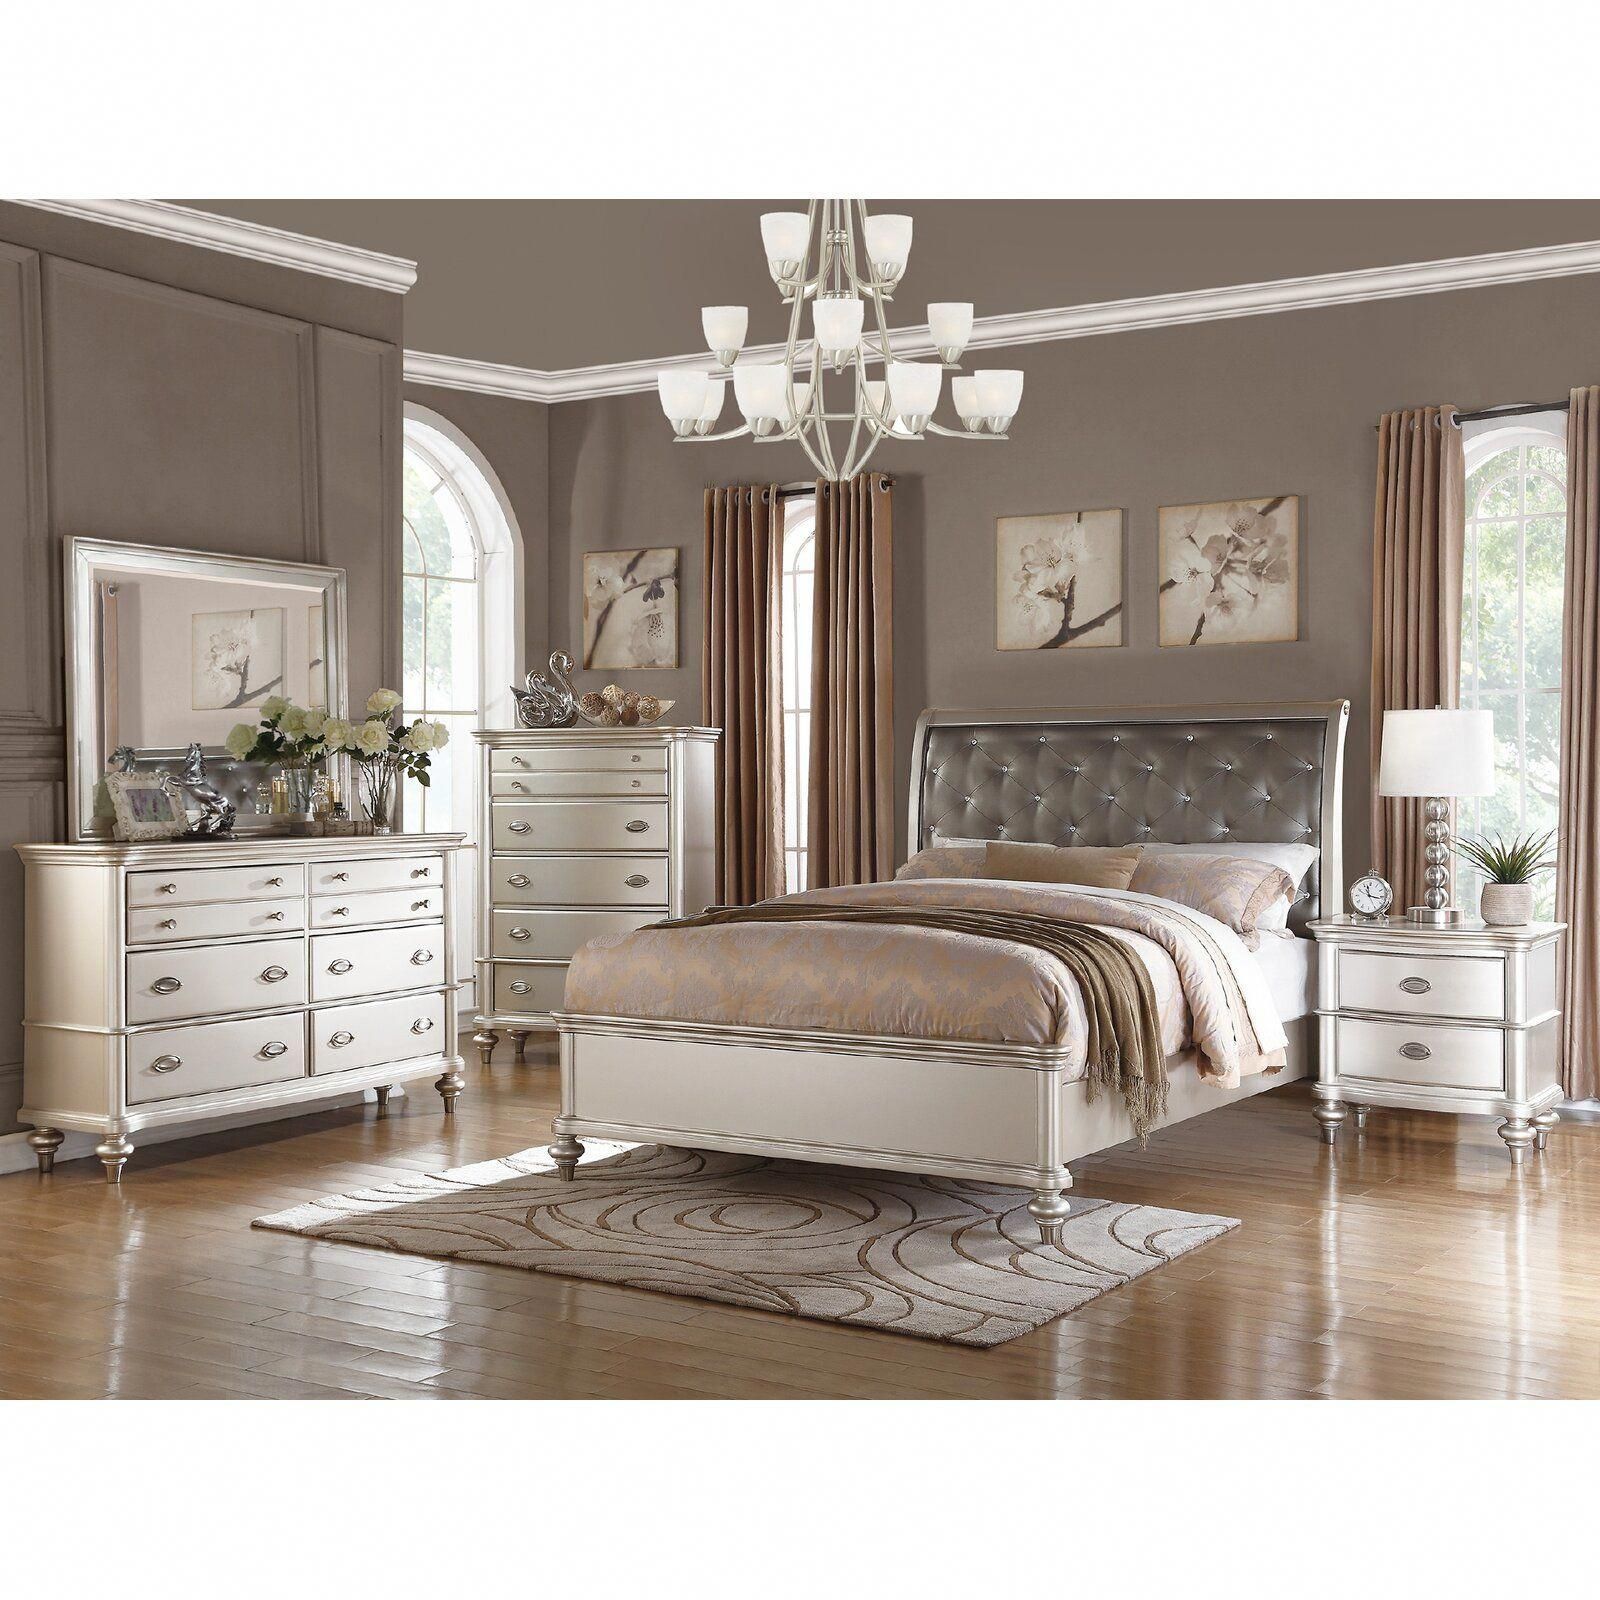 House of Hampton Akiva Upholstered Panel Bed  Wayfair